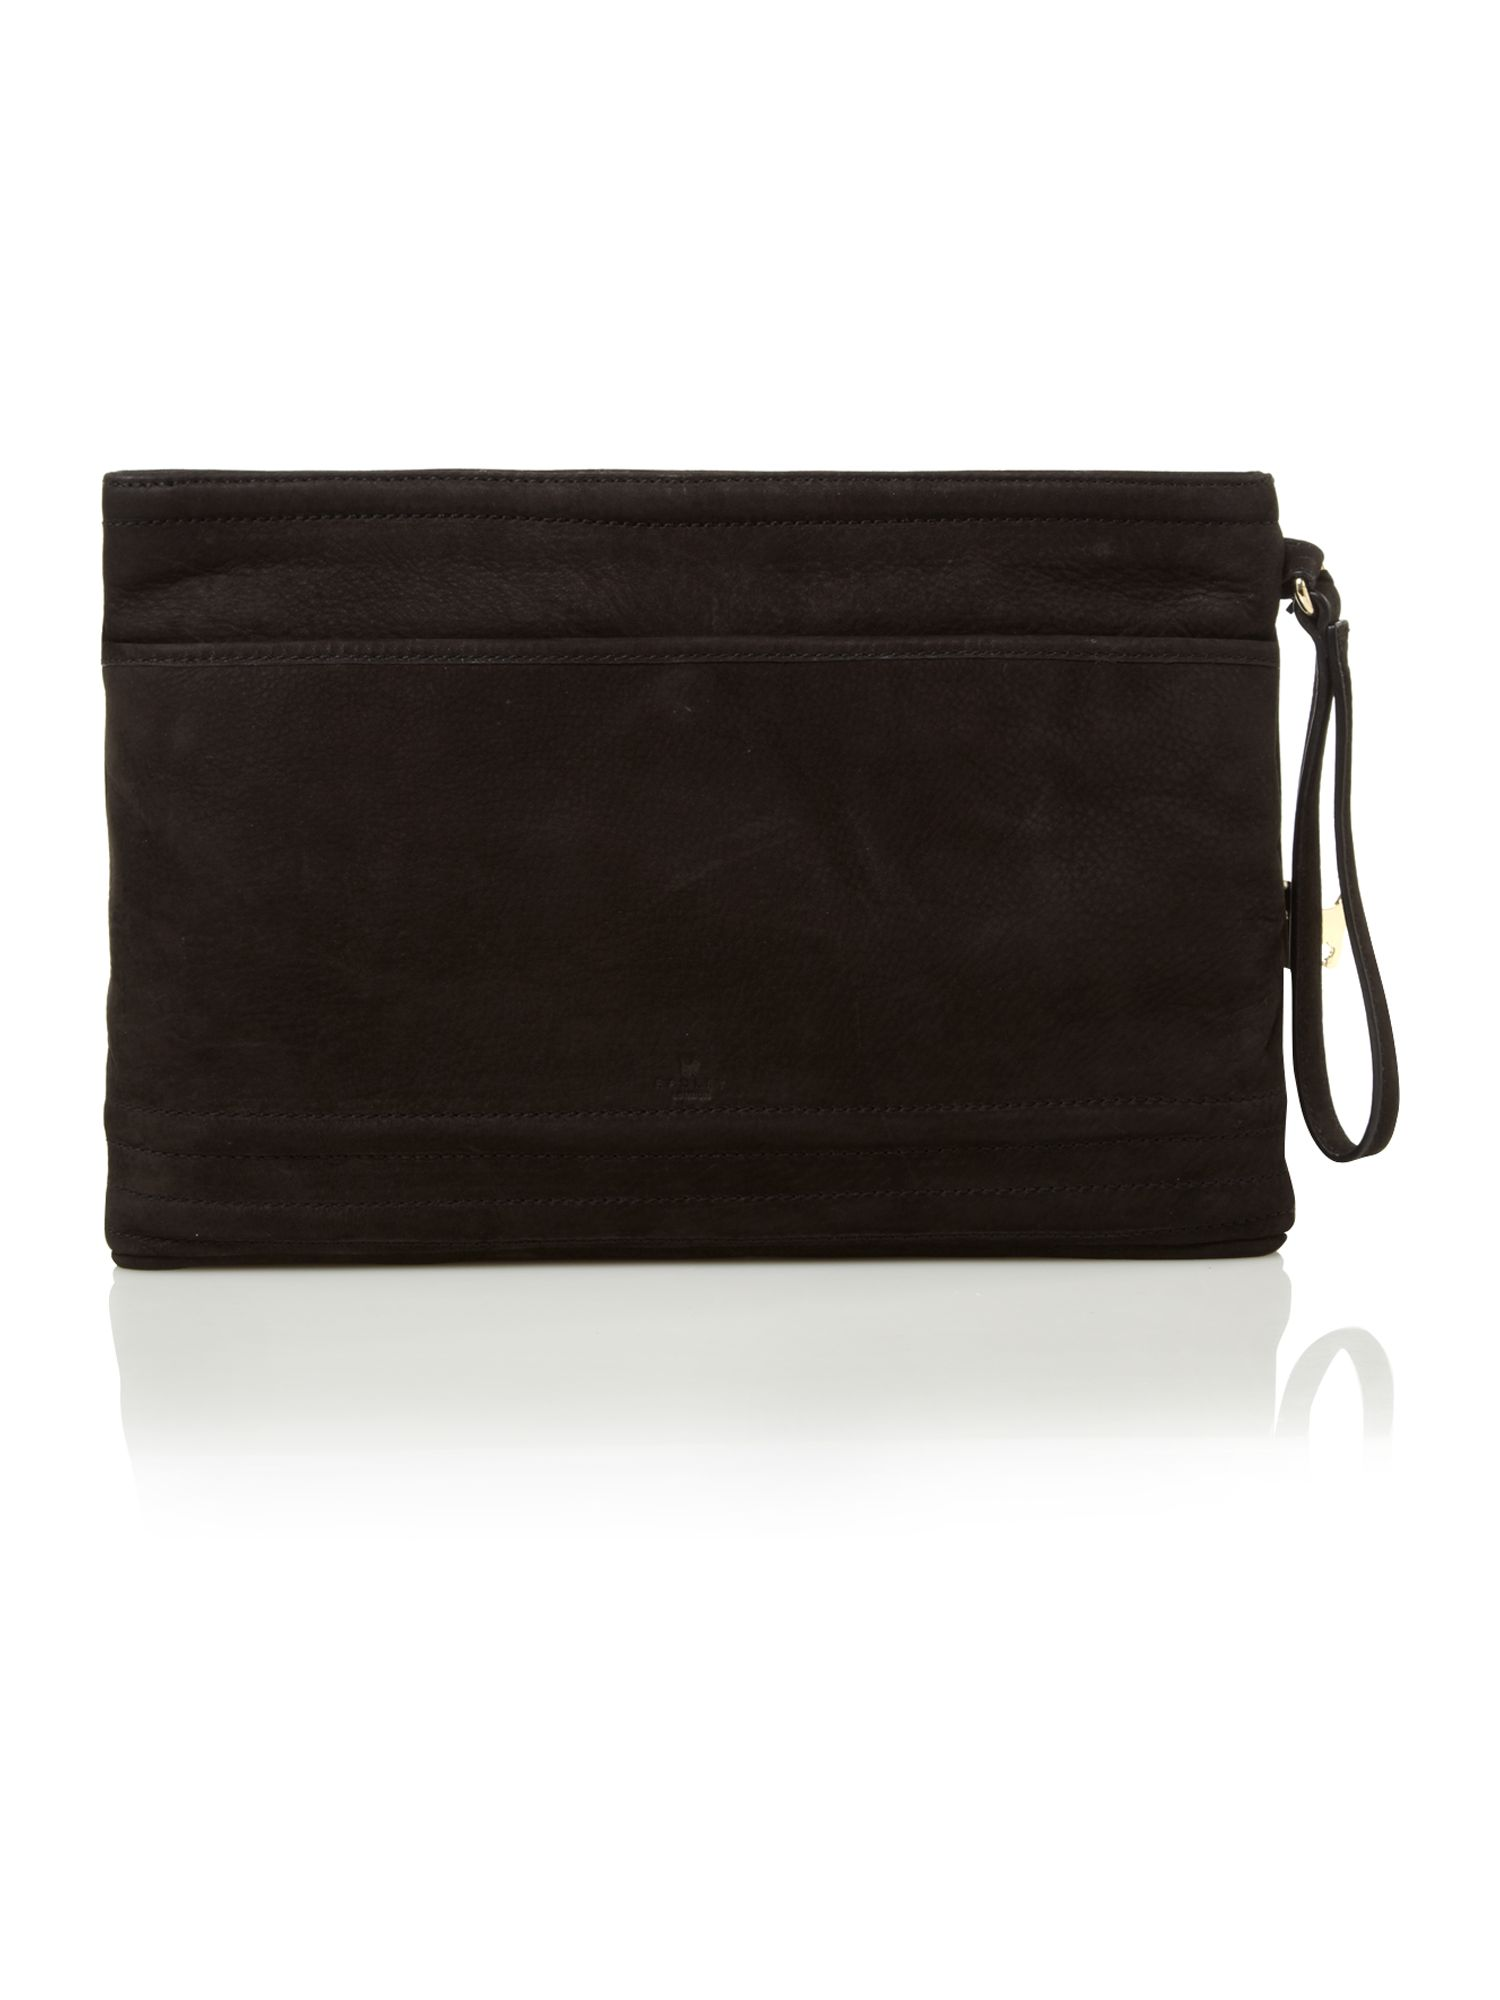 Goldington large zip clutch